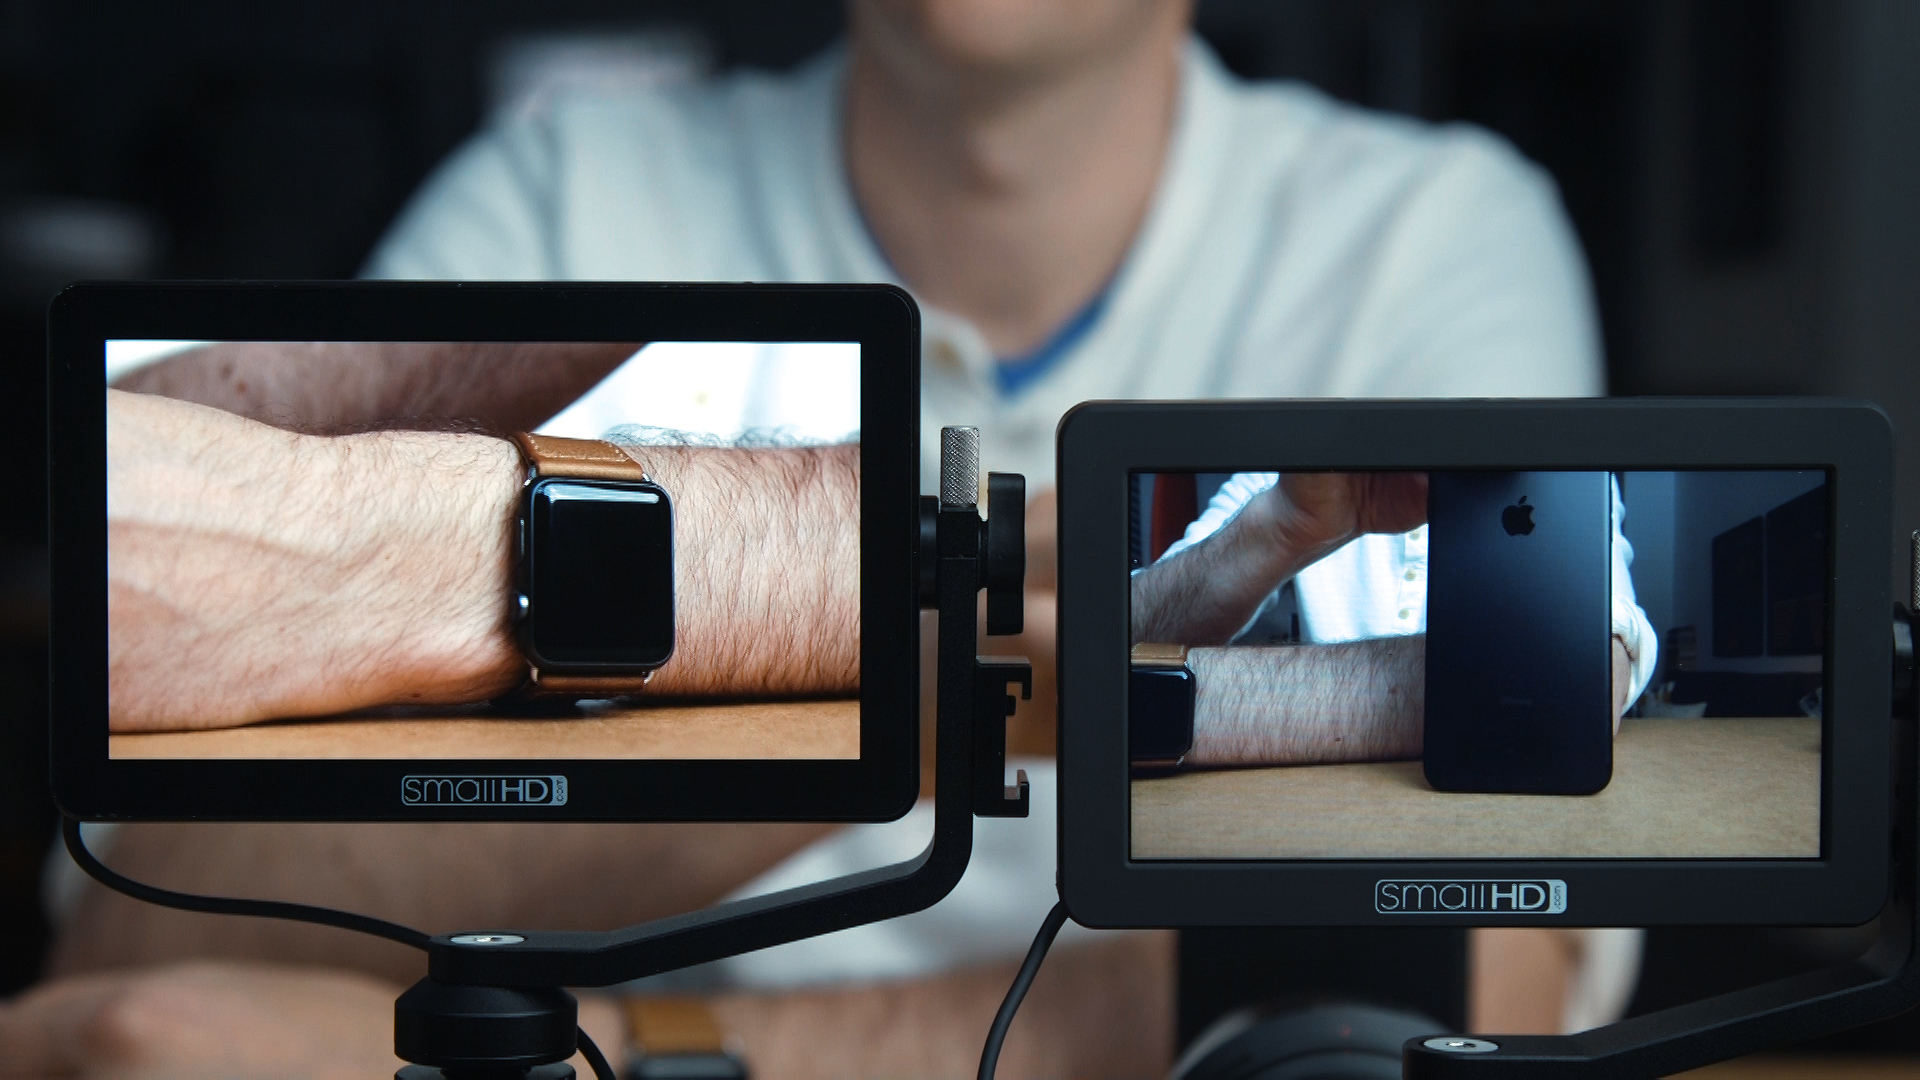 SmallHD Focus Review - V1.00_01_03_18.Still002.jpg